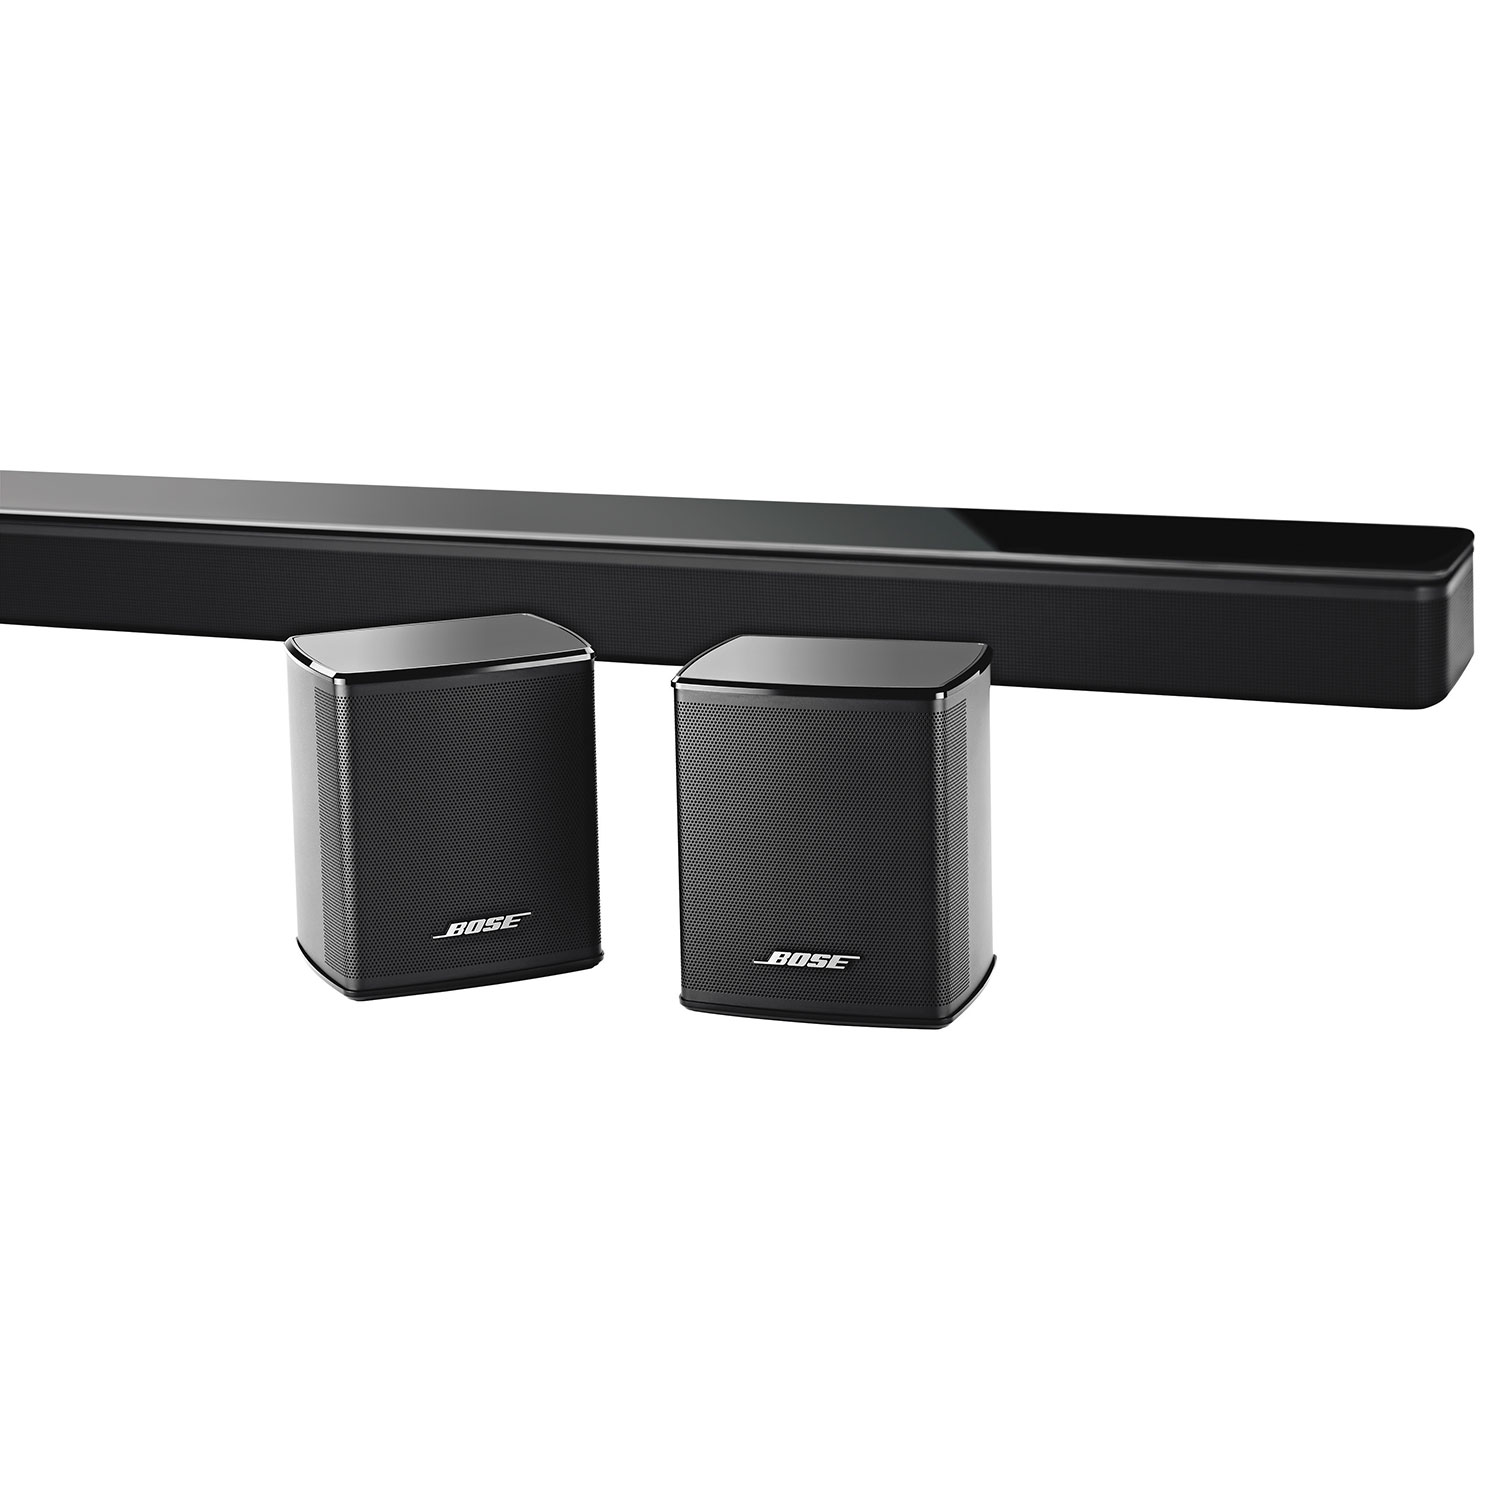 bose virtually invisible 300 wireless surround speaker pair black home speakers best buy canada